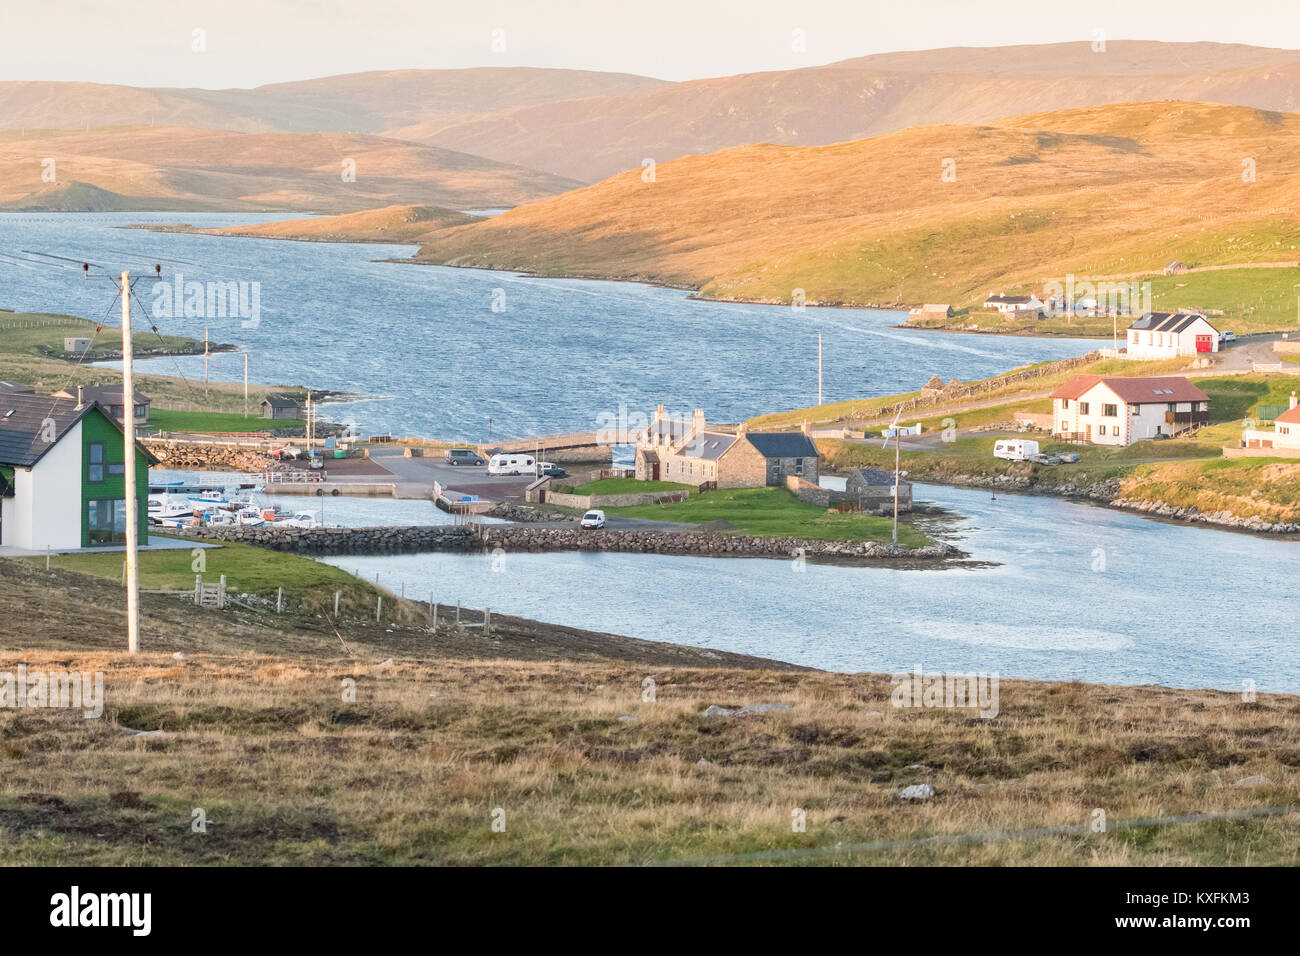 Bridge End Outdoor Centre and Marina at the head of South Voe with Lang Sound beyond seen from West Burra looking - Stock Image